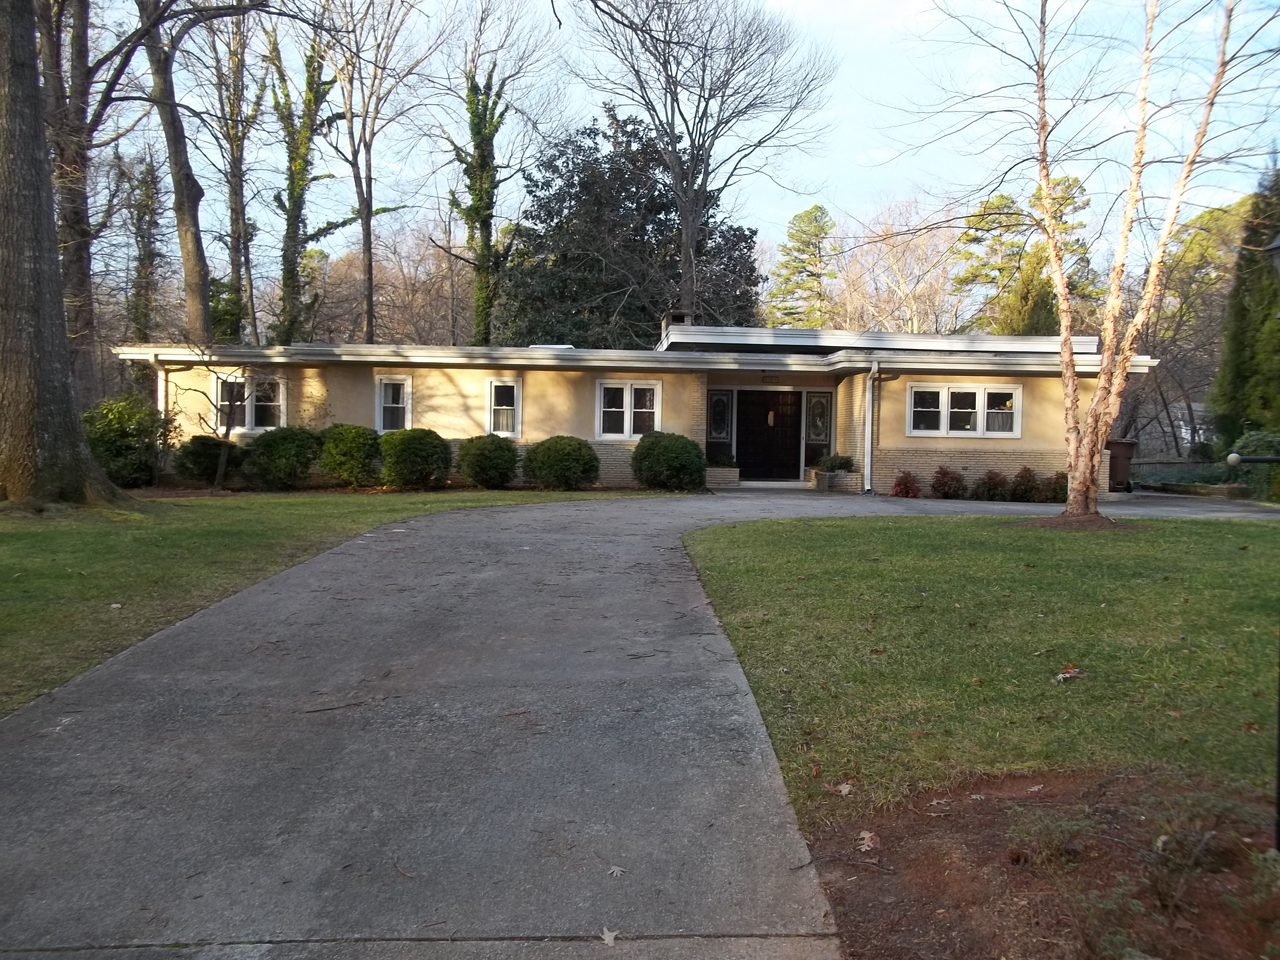 100 1960 split level in nc leesville road middle